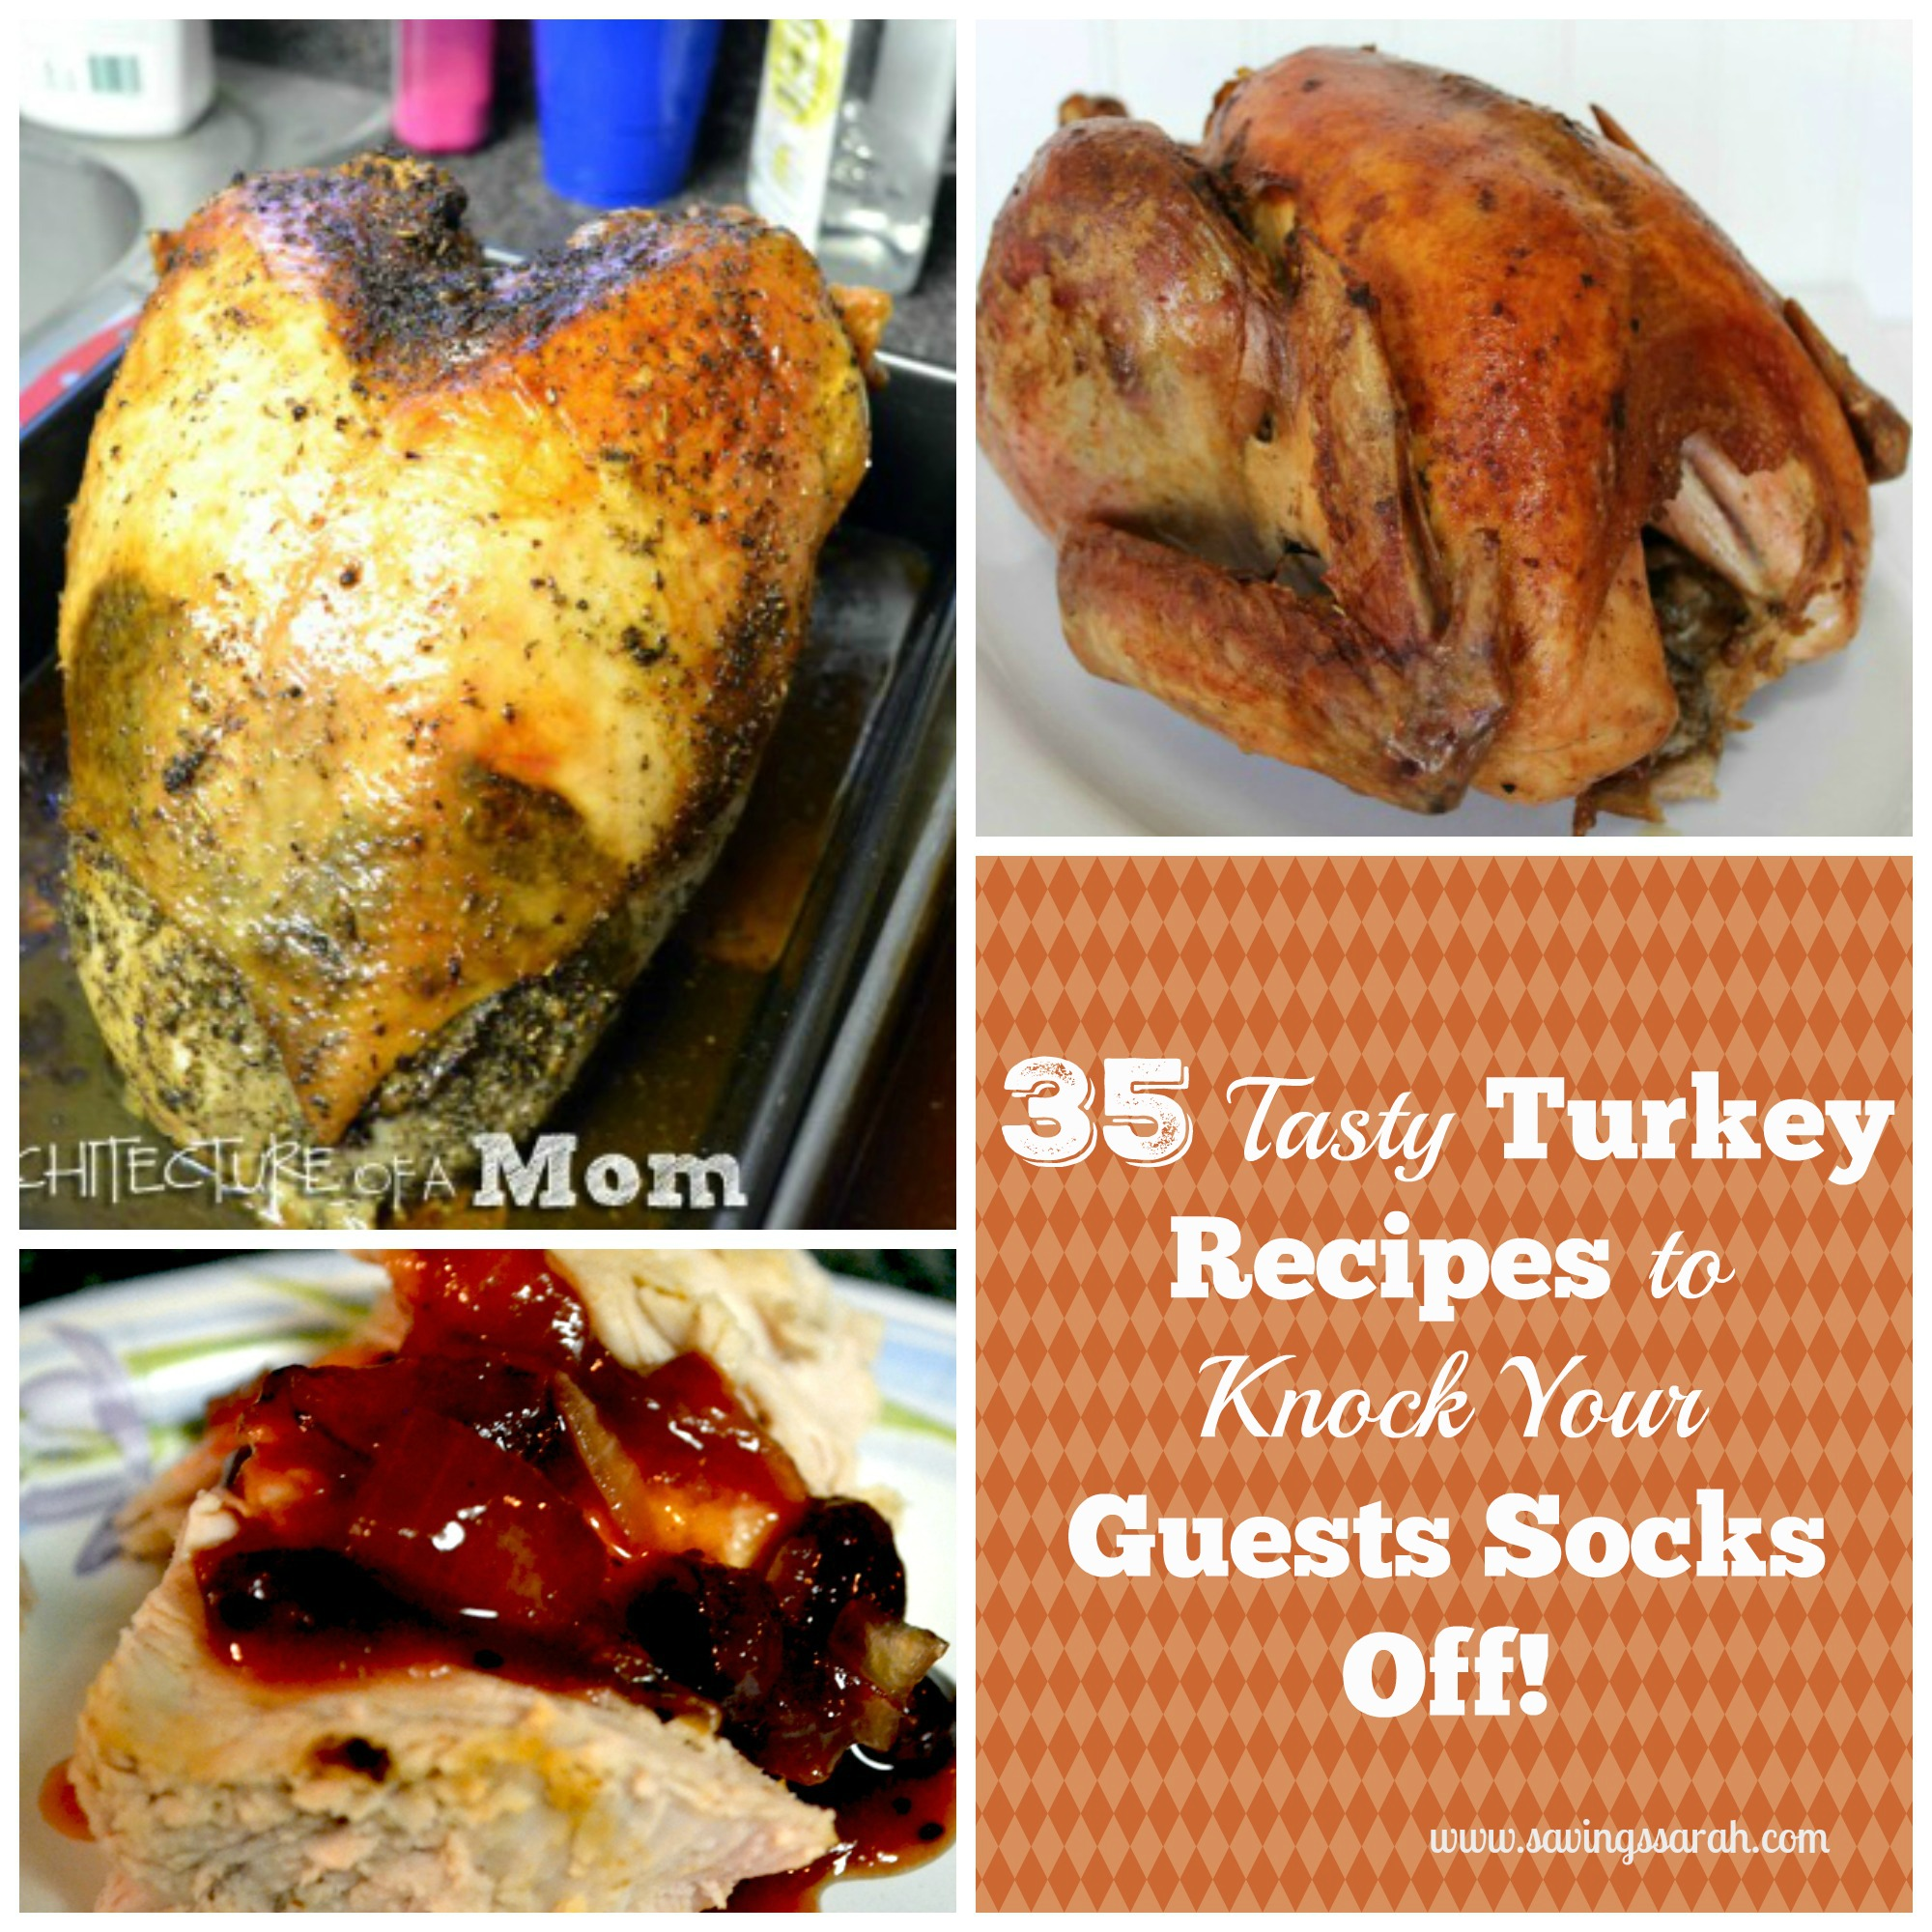 35 Tasty Turkey Recipes To Knock Guests 39 Socks Off Earning And Saving With Sarah